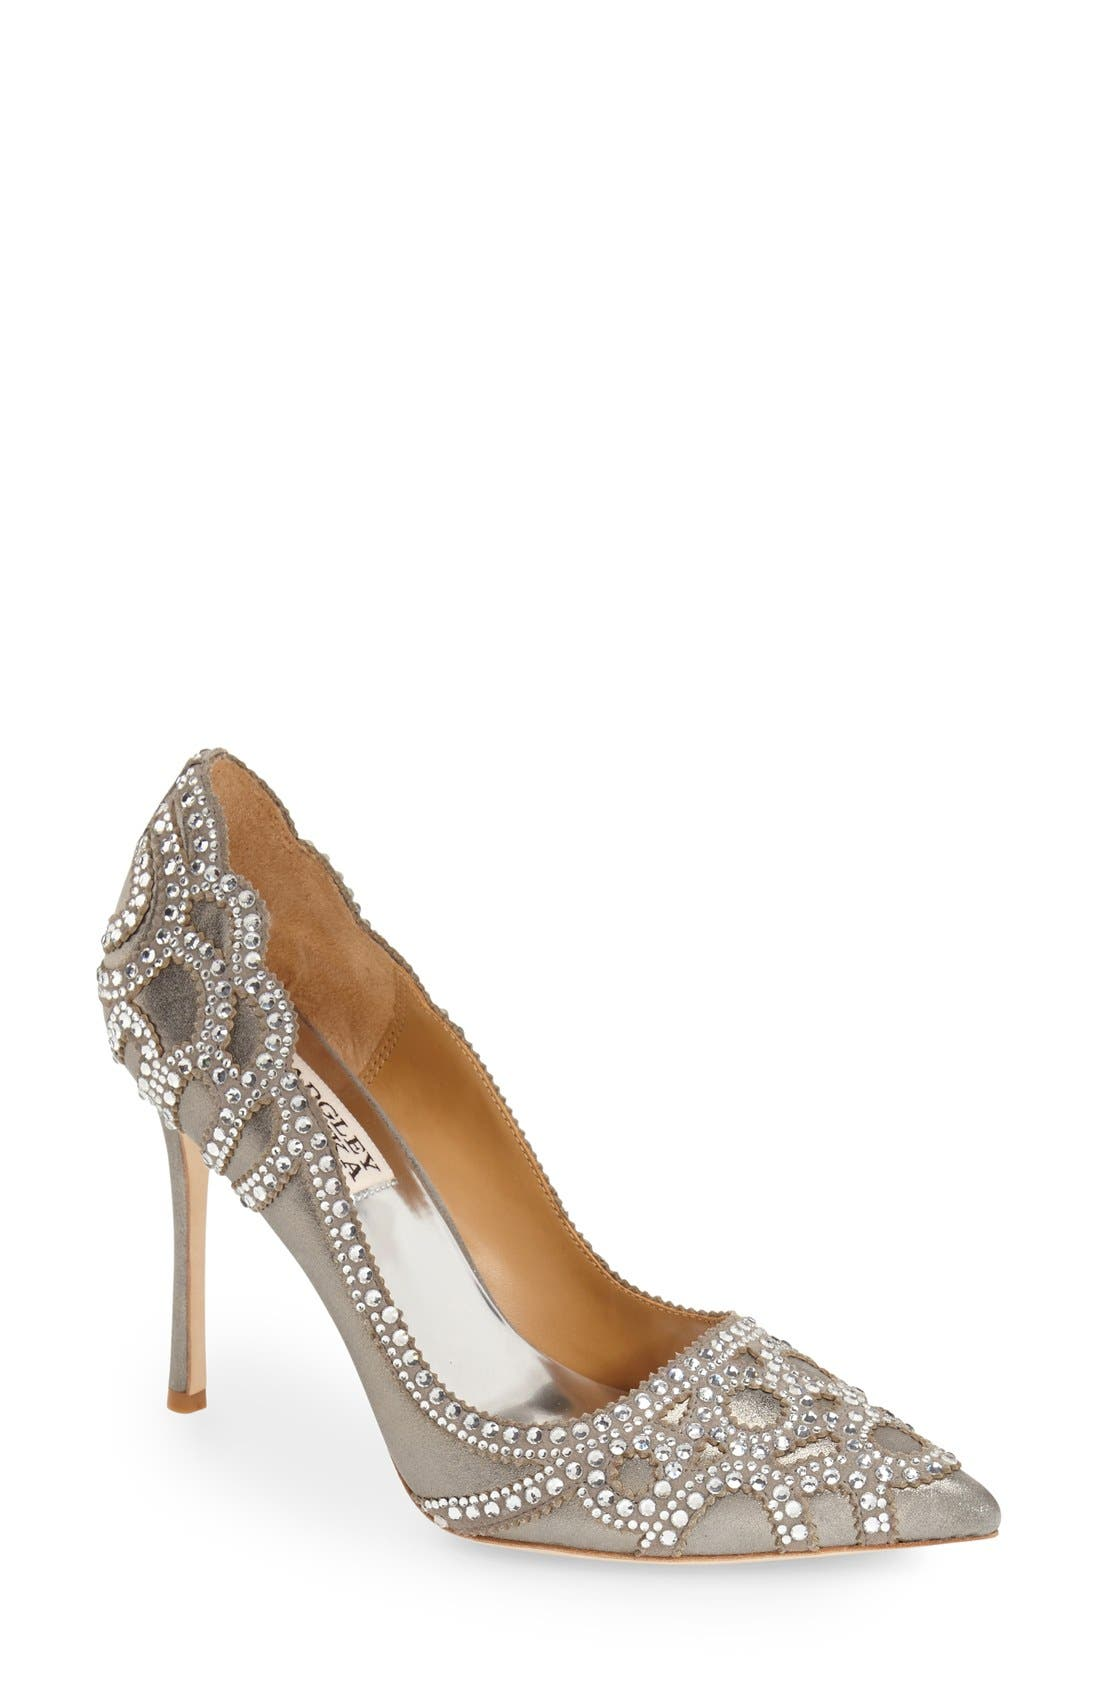 Alternate Image 1 Selected - Badgley Mischka 'Rouge II' Crystal Pointy Toe Pump (Women)